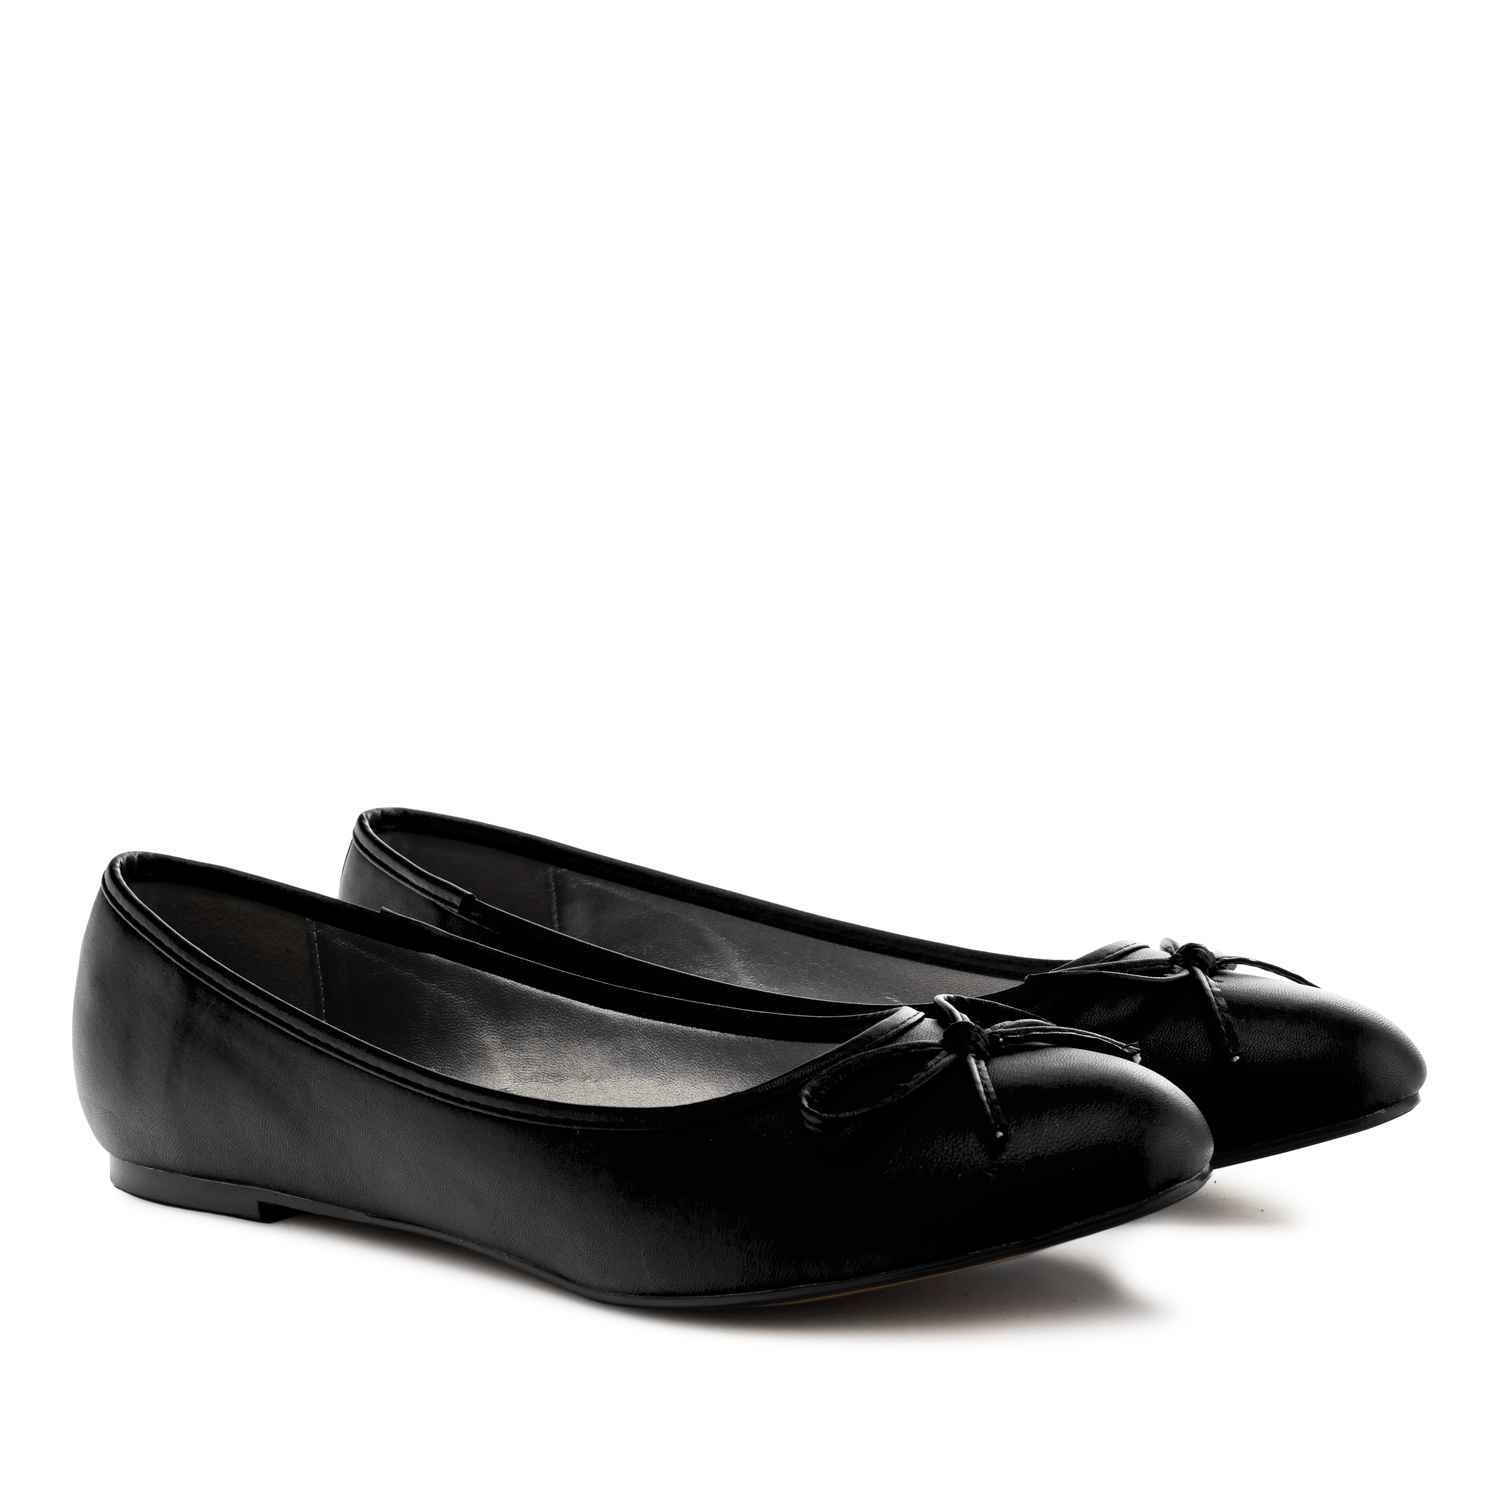 Classic Big Flat Ballerinas in Black Soft